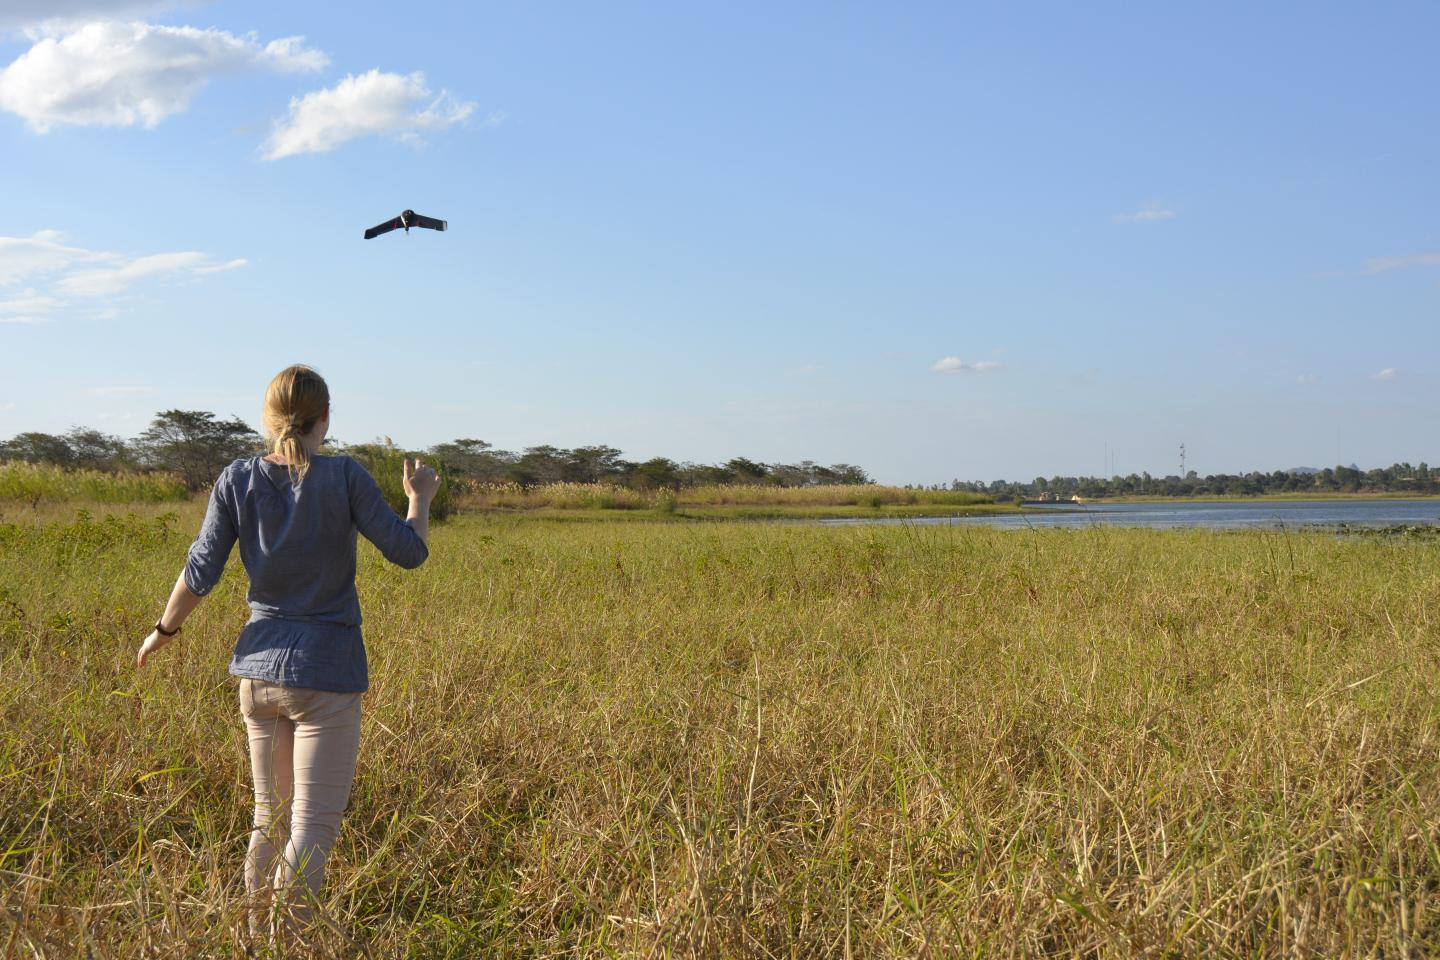 A woman looks up at a drone in a field, Malawi